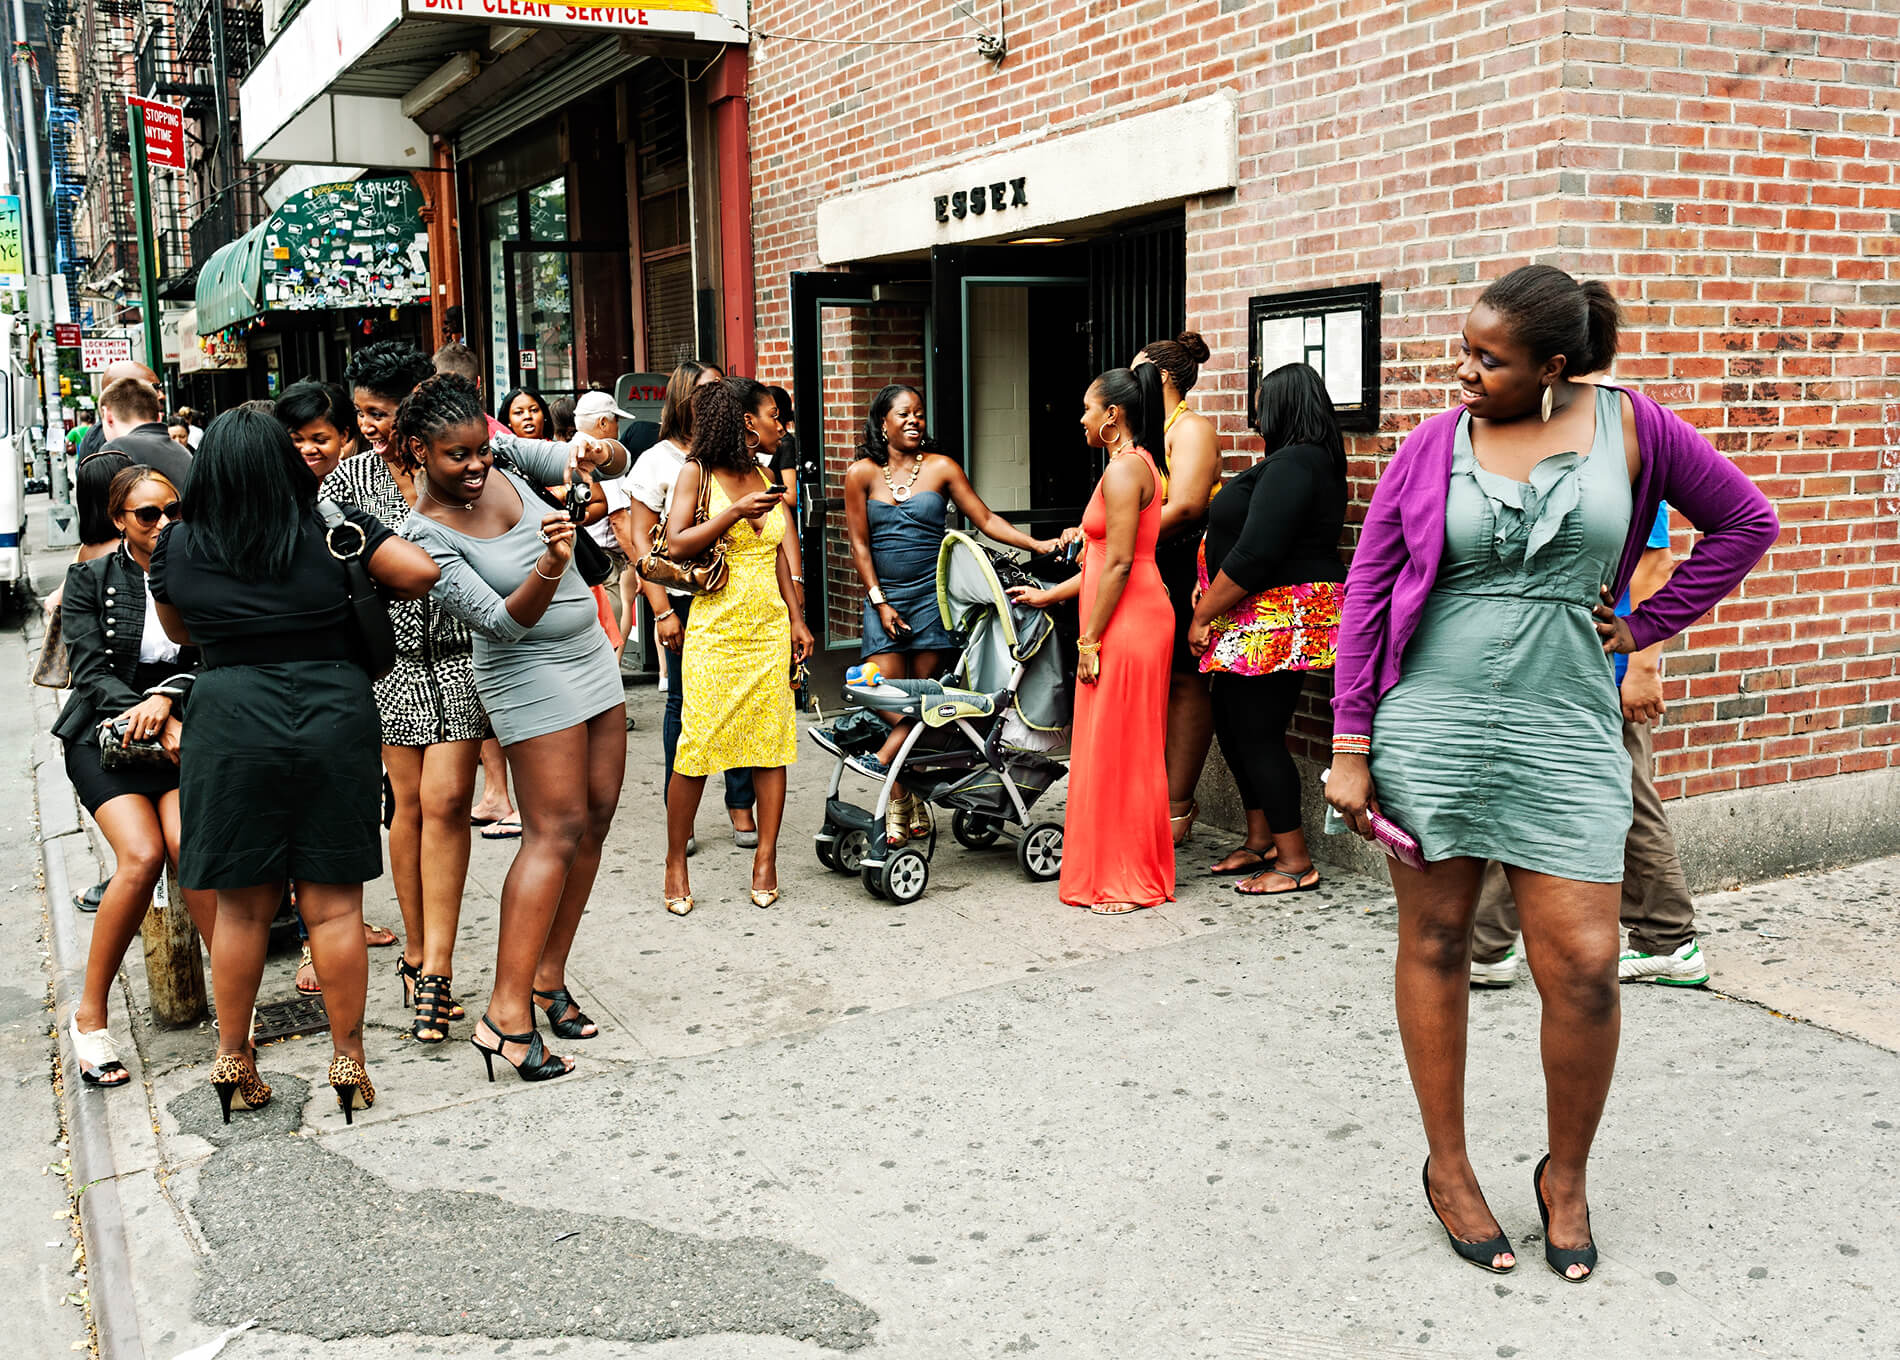 Crowd dressed up for sunday brunch in Lower East Side, New York.